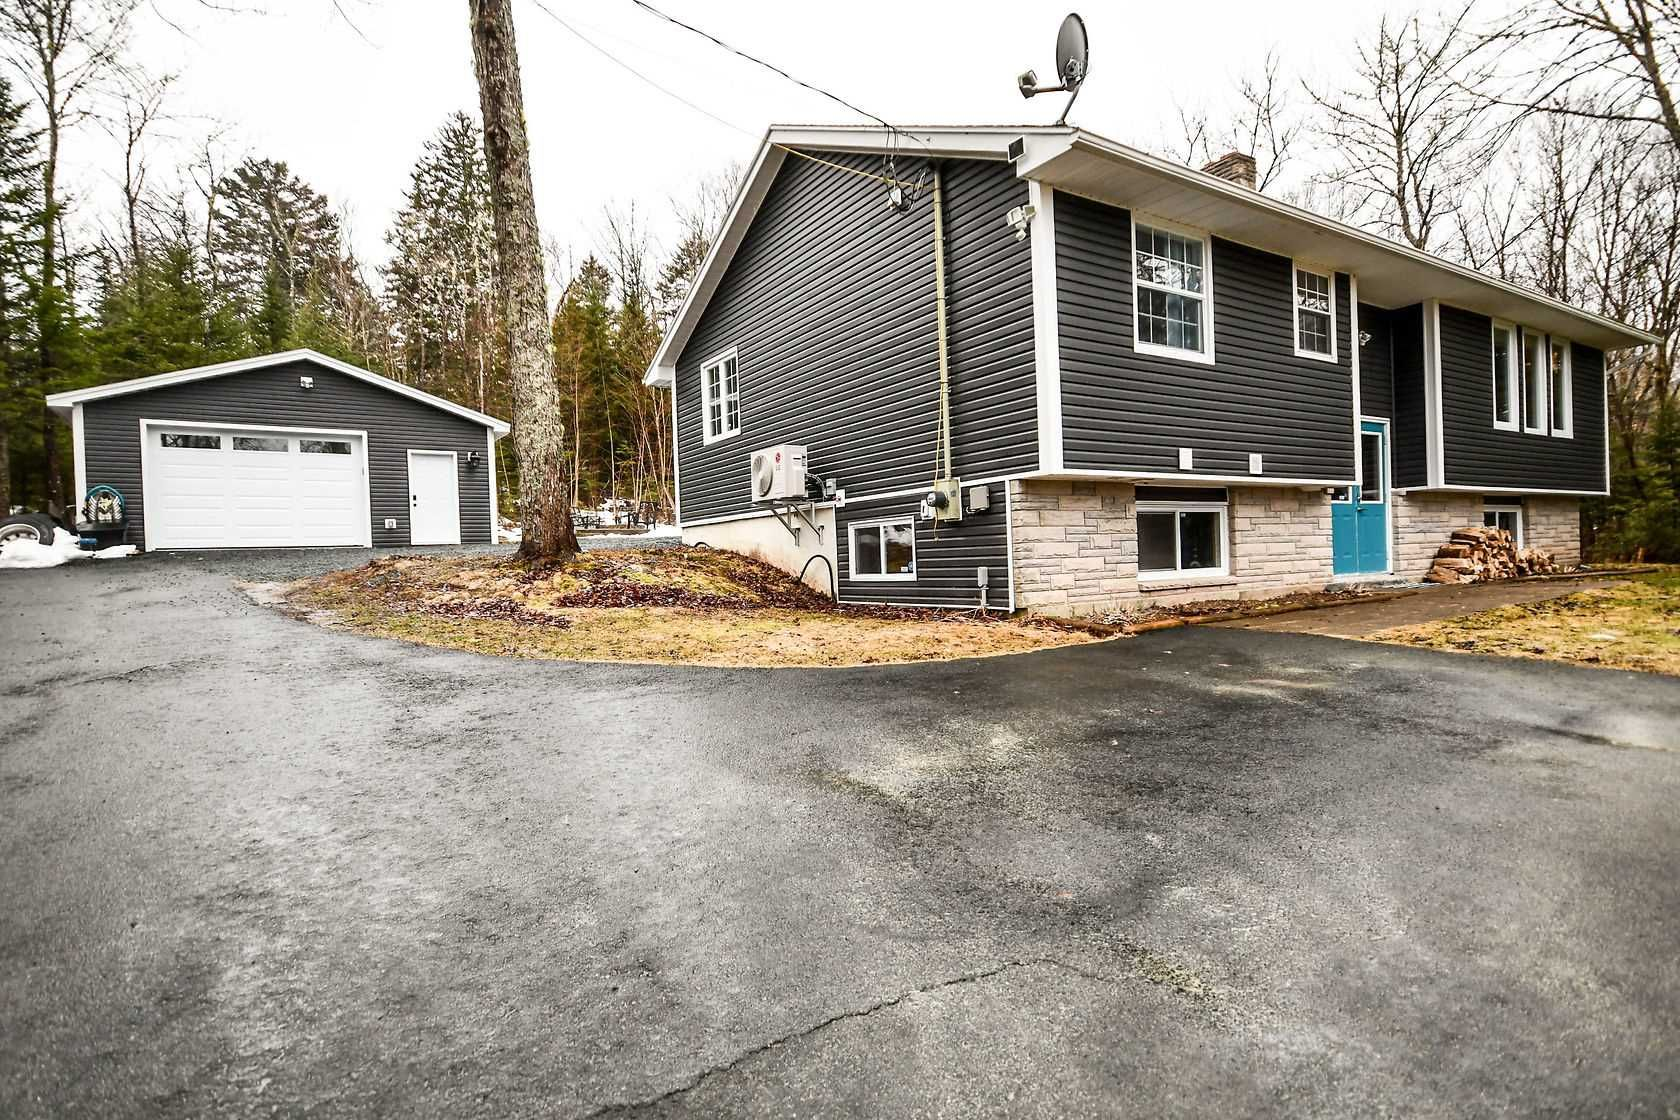 Main Photo: 28 Lakemist Court in East Preston: 31-Lawrencetown, Lake Echo, Porters Lake Residential for sale (Halifax-Dartmouth)  : MLS®# 202105359